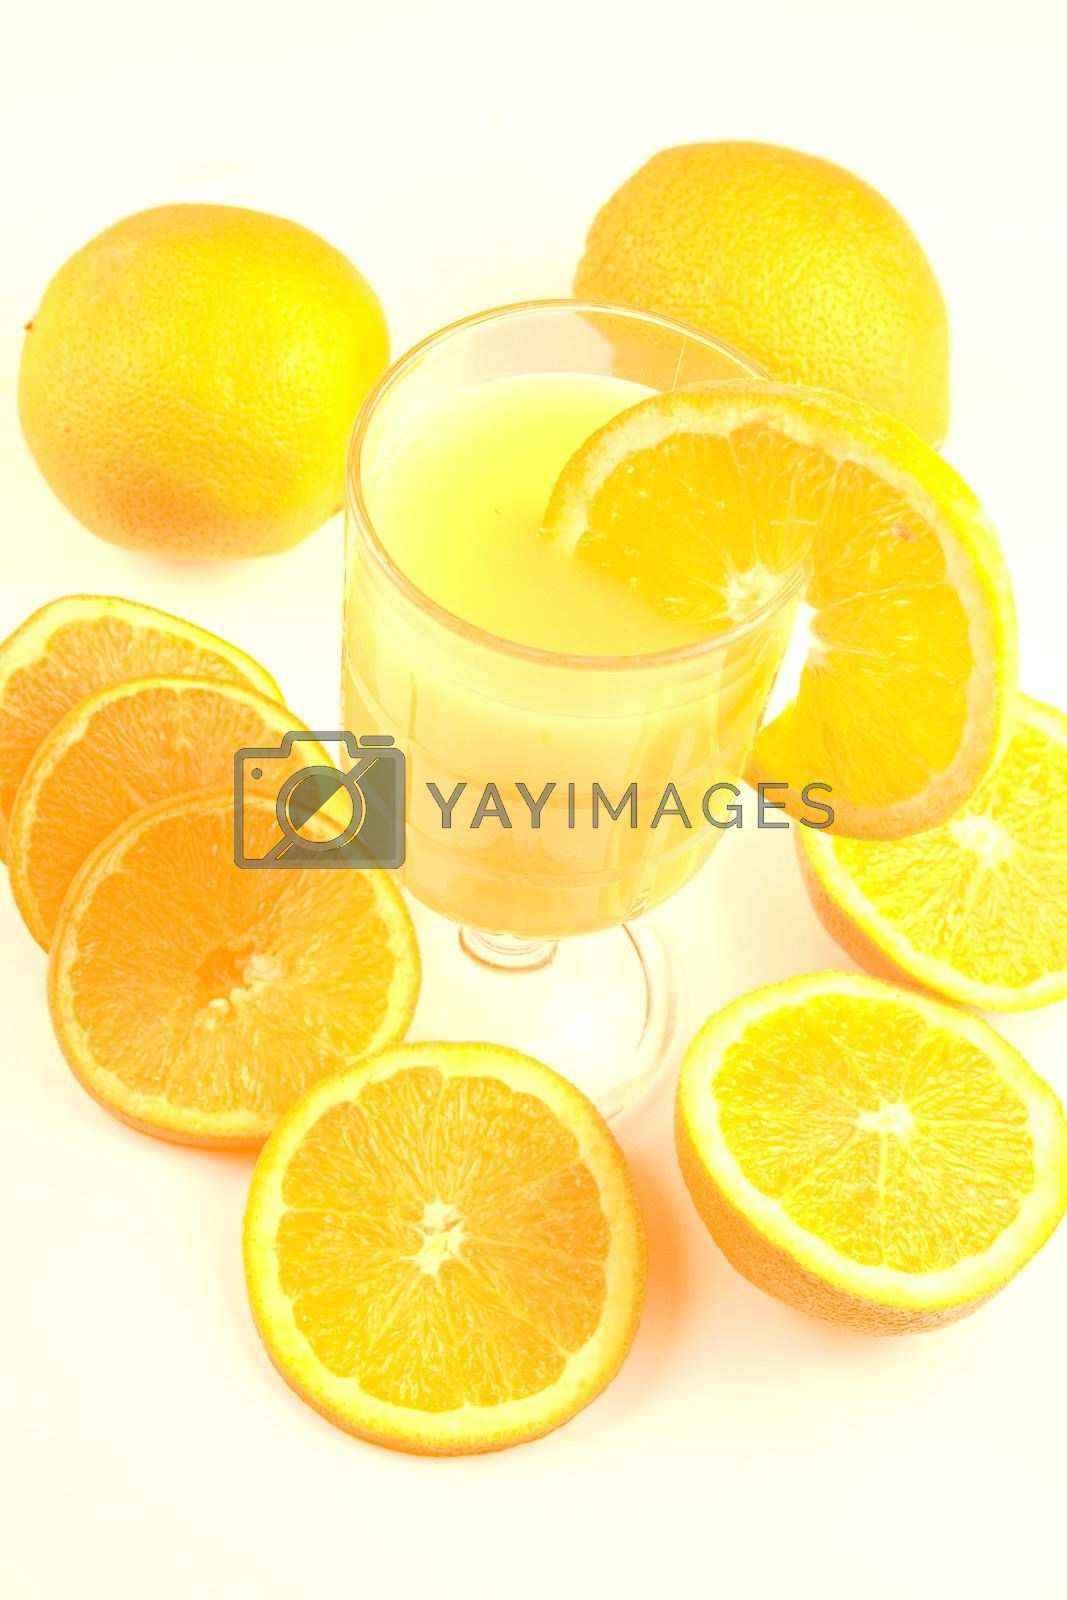 Glass of orange juice surounded by oranges